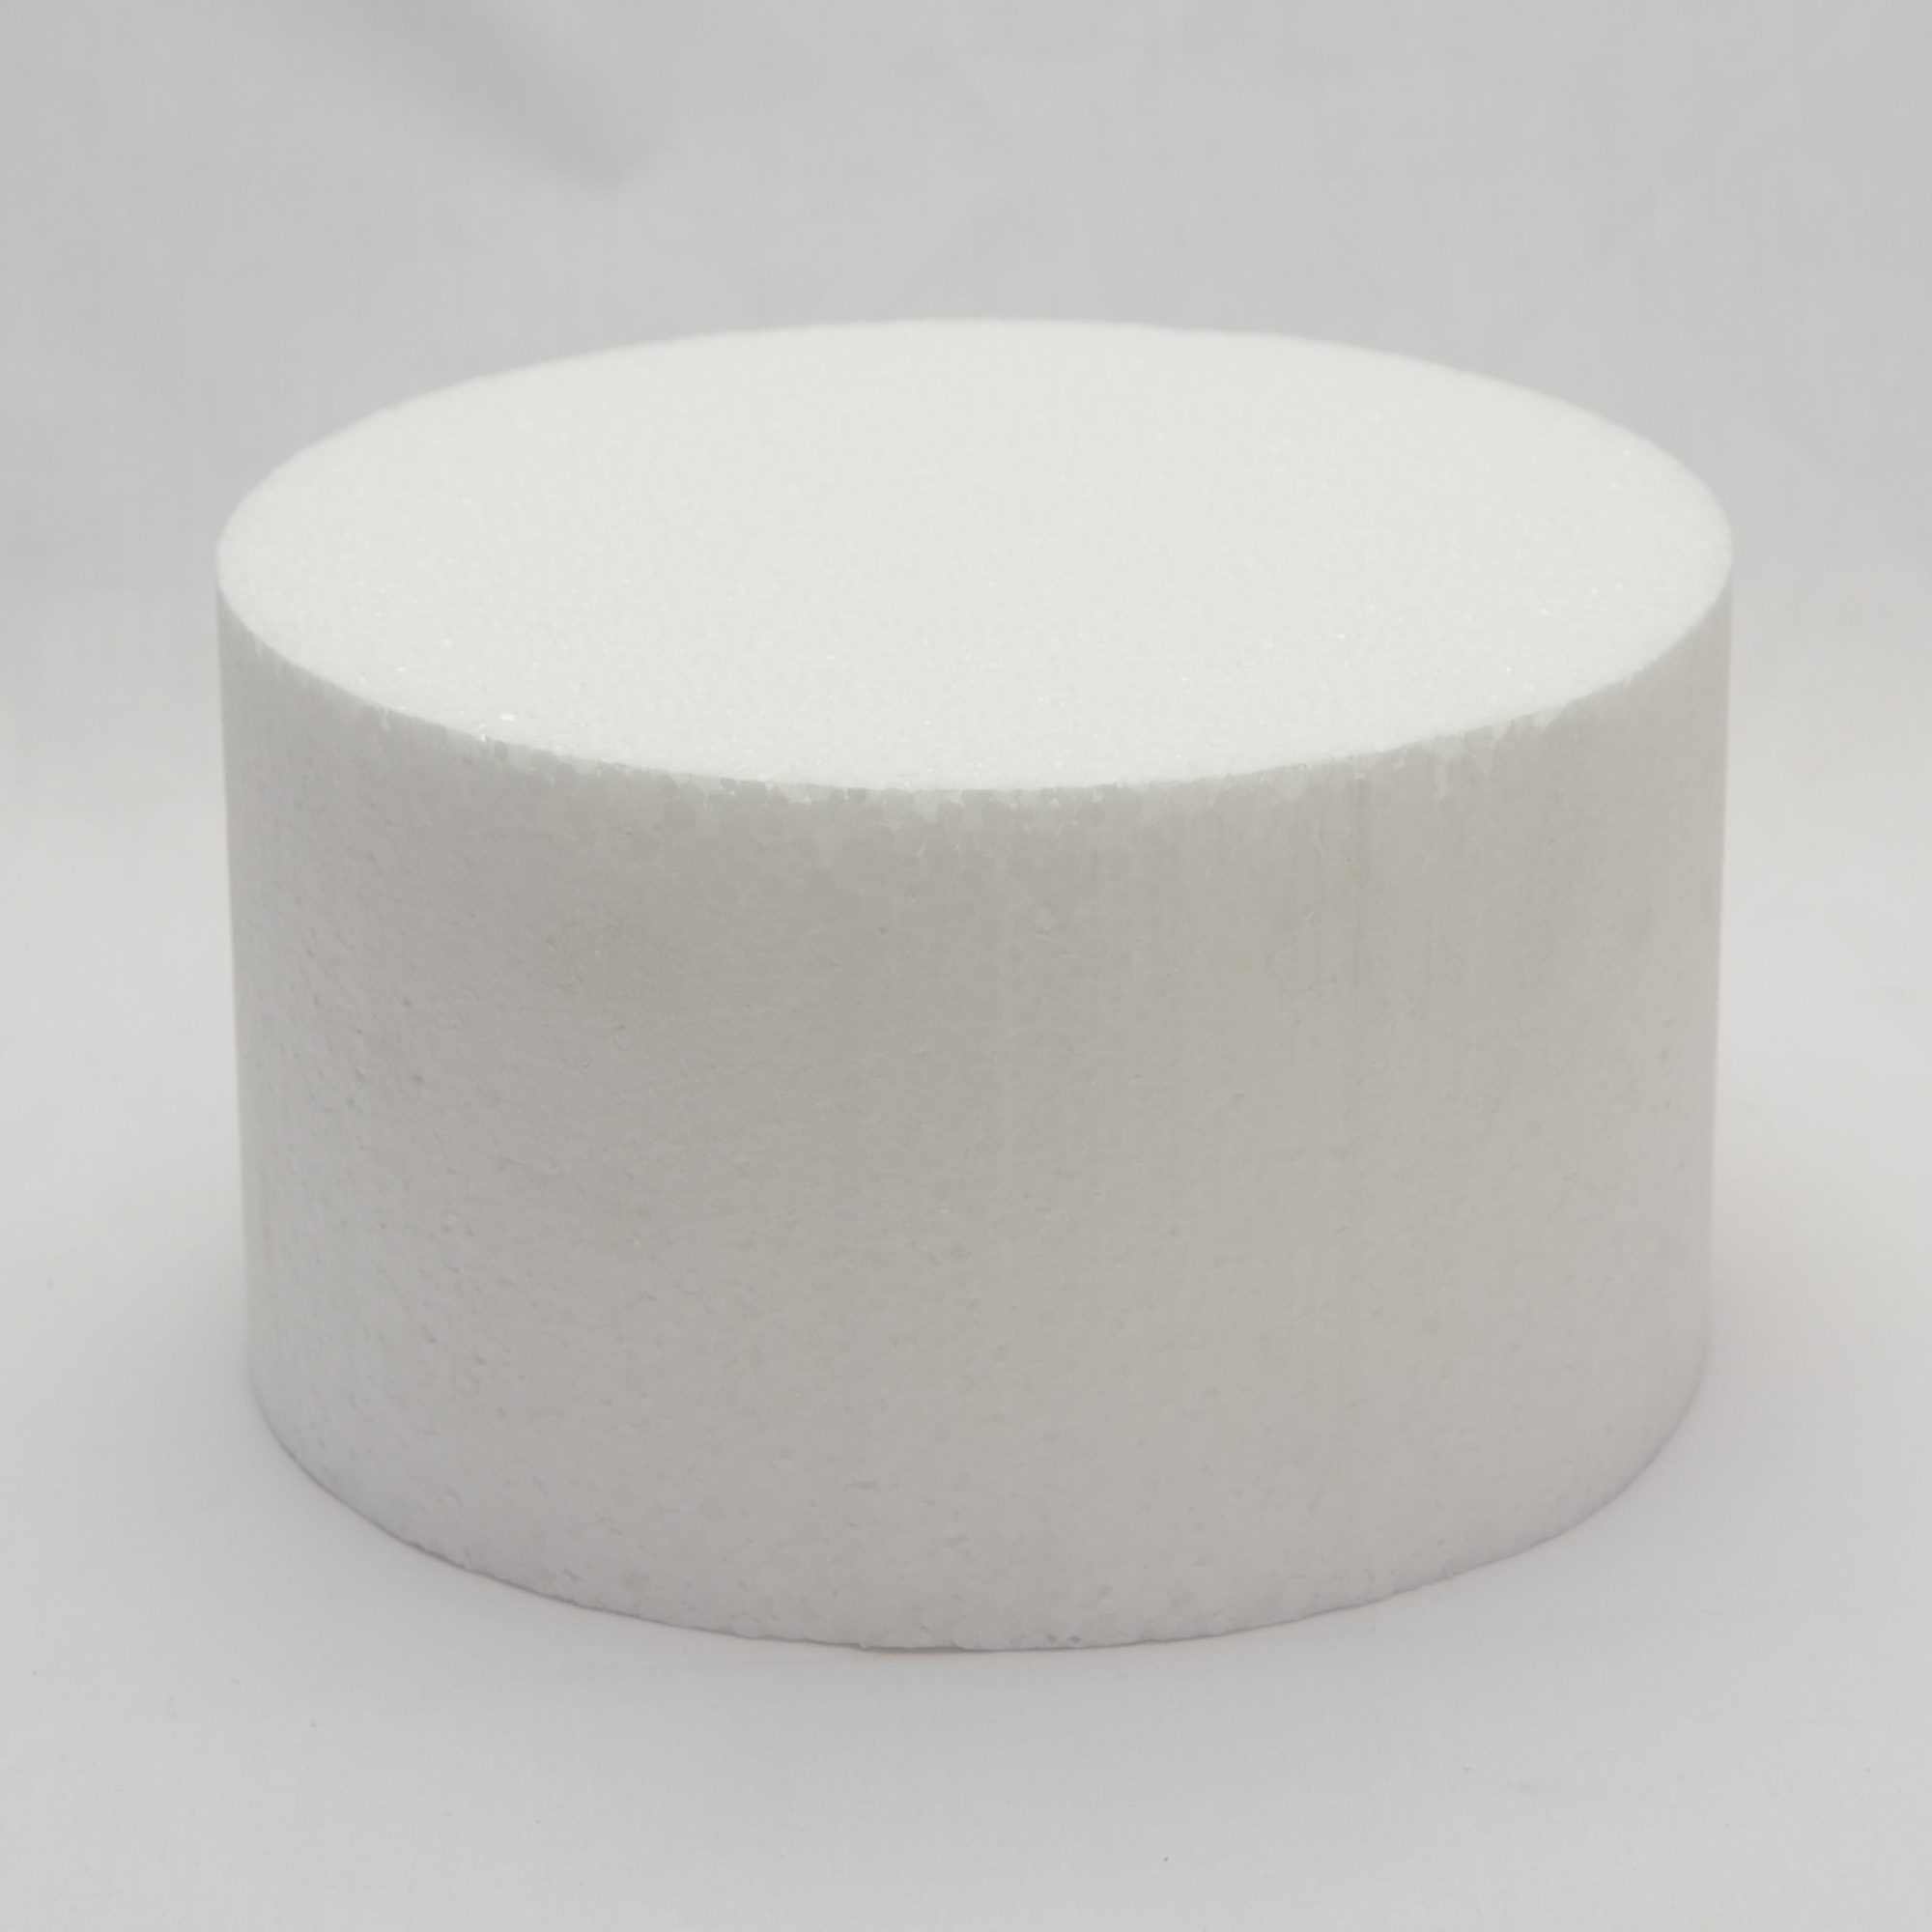 Polystyrene Cake Dummy Round X 5 Quot High Multiple Sizes